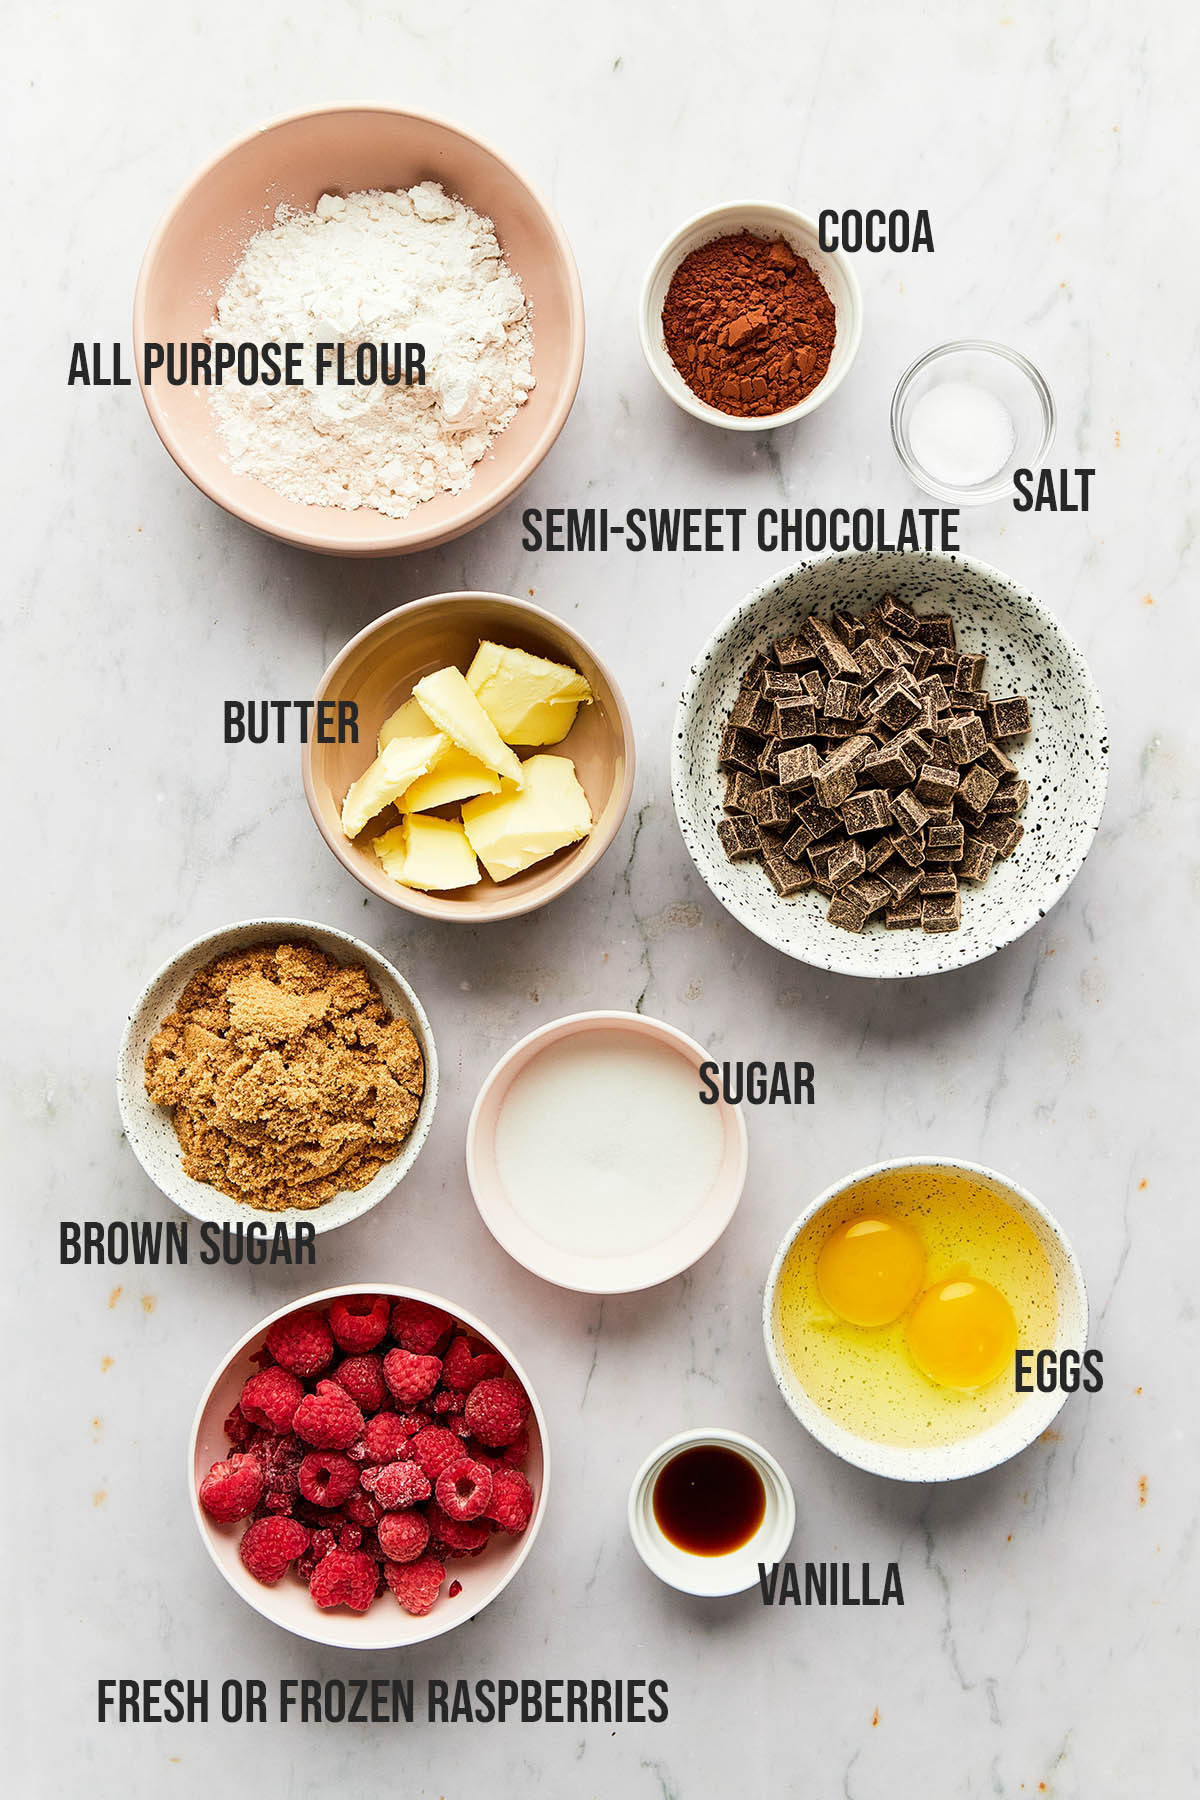 Ingredients to make double chocolate raspberry brownies.